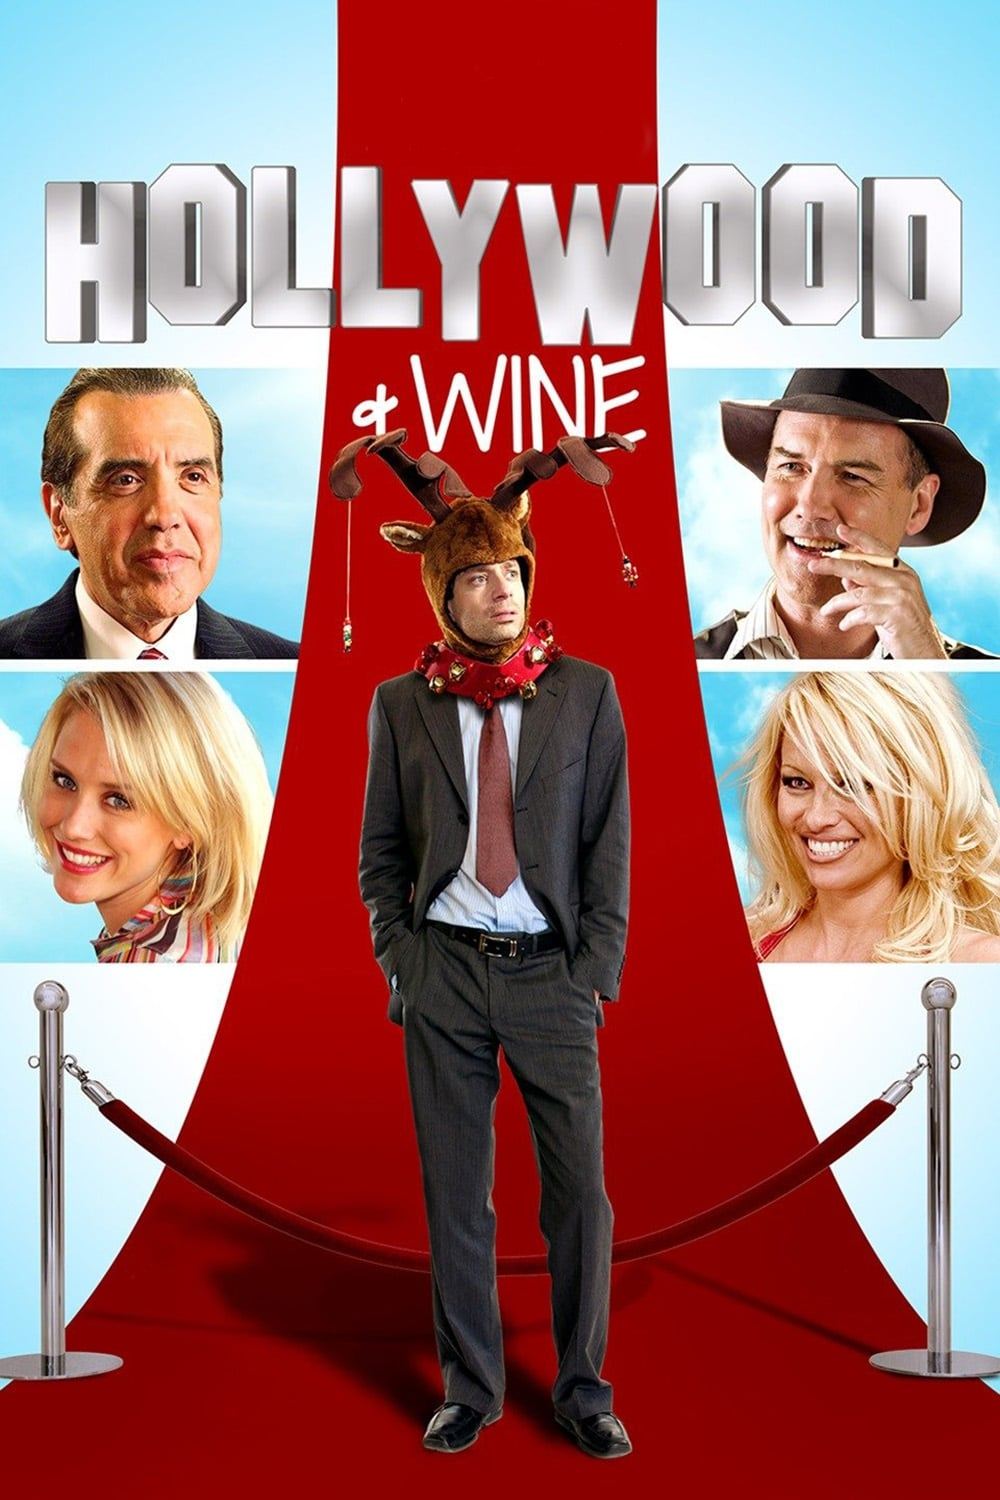 Hollywood & Wine on FREECABLE TV